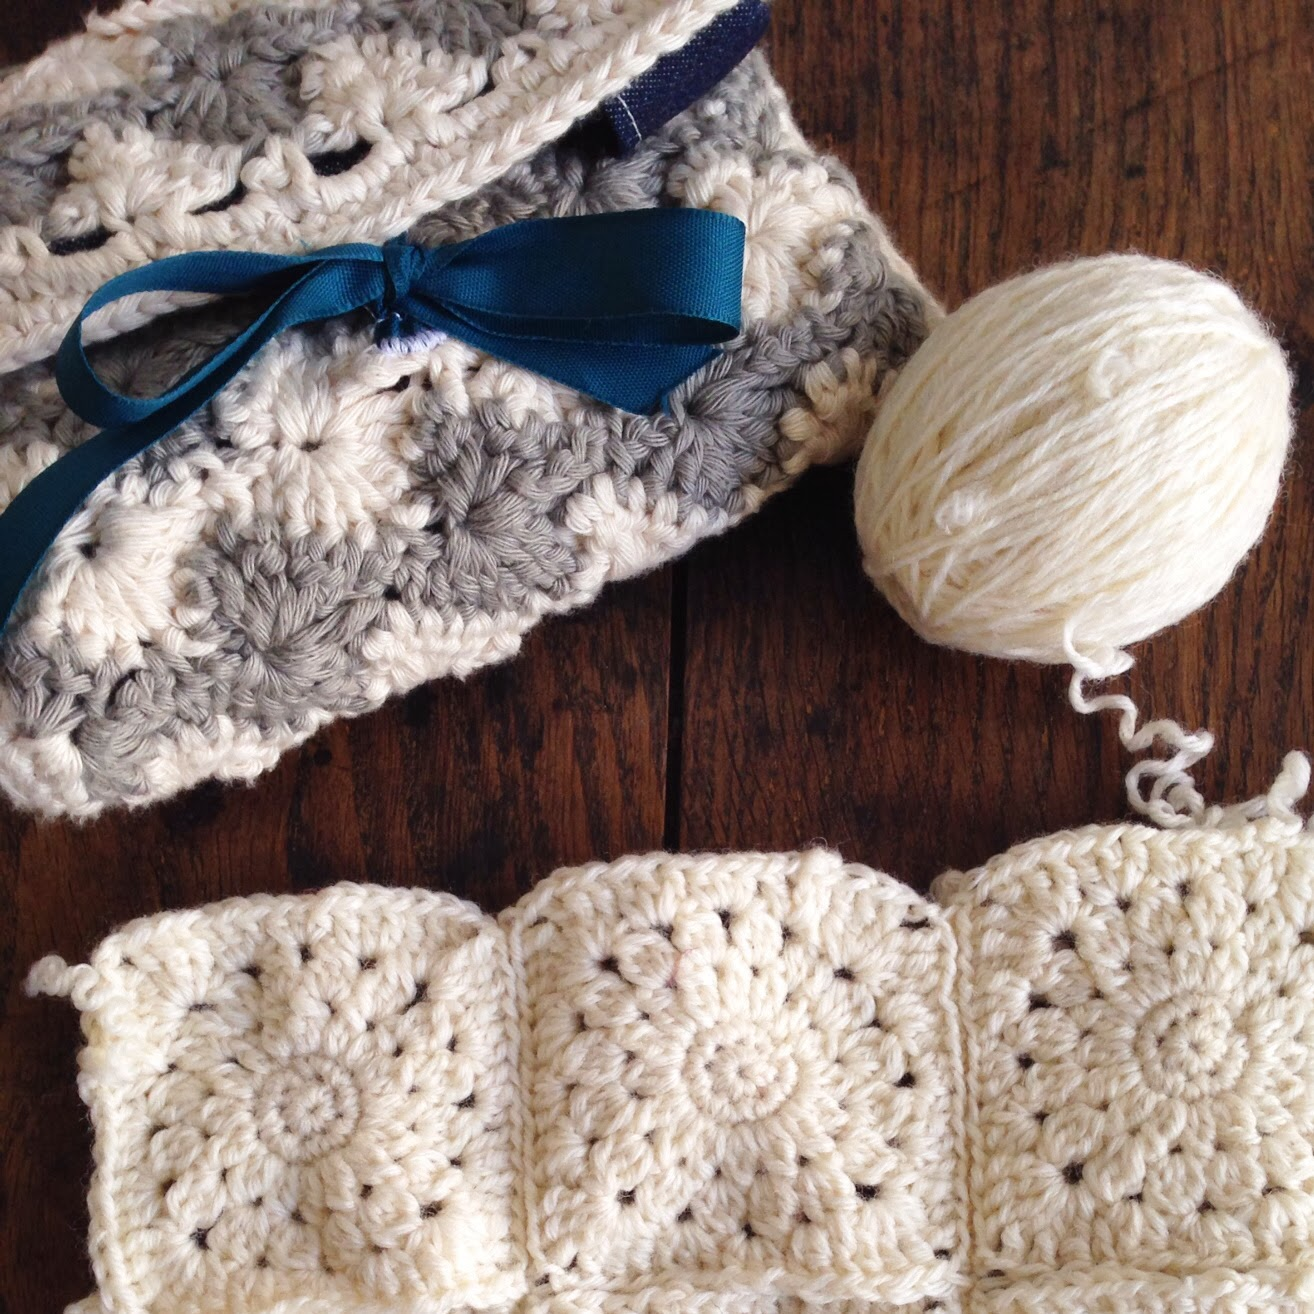 Granny squares © L'anglaise